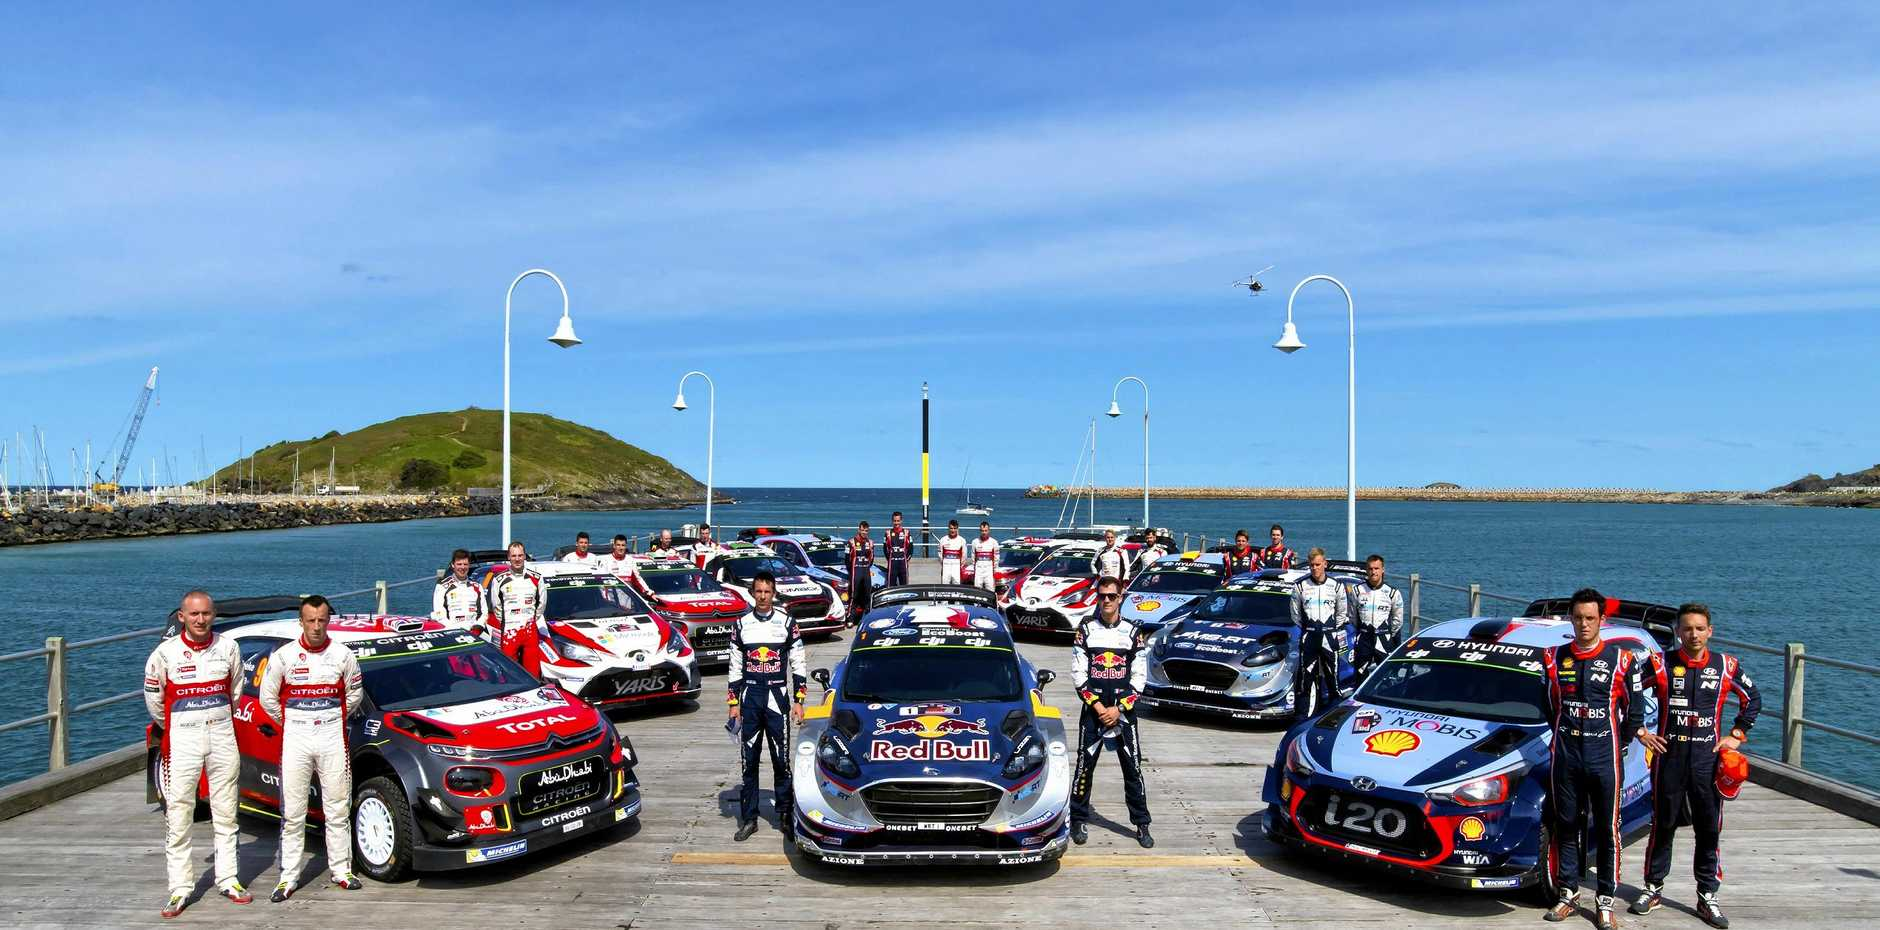 READY TO GO: Feel the thrill of the WRC at Kennards Hire Rally Australia from November 15 - 18 on the Coffs Coast.